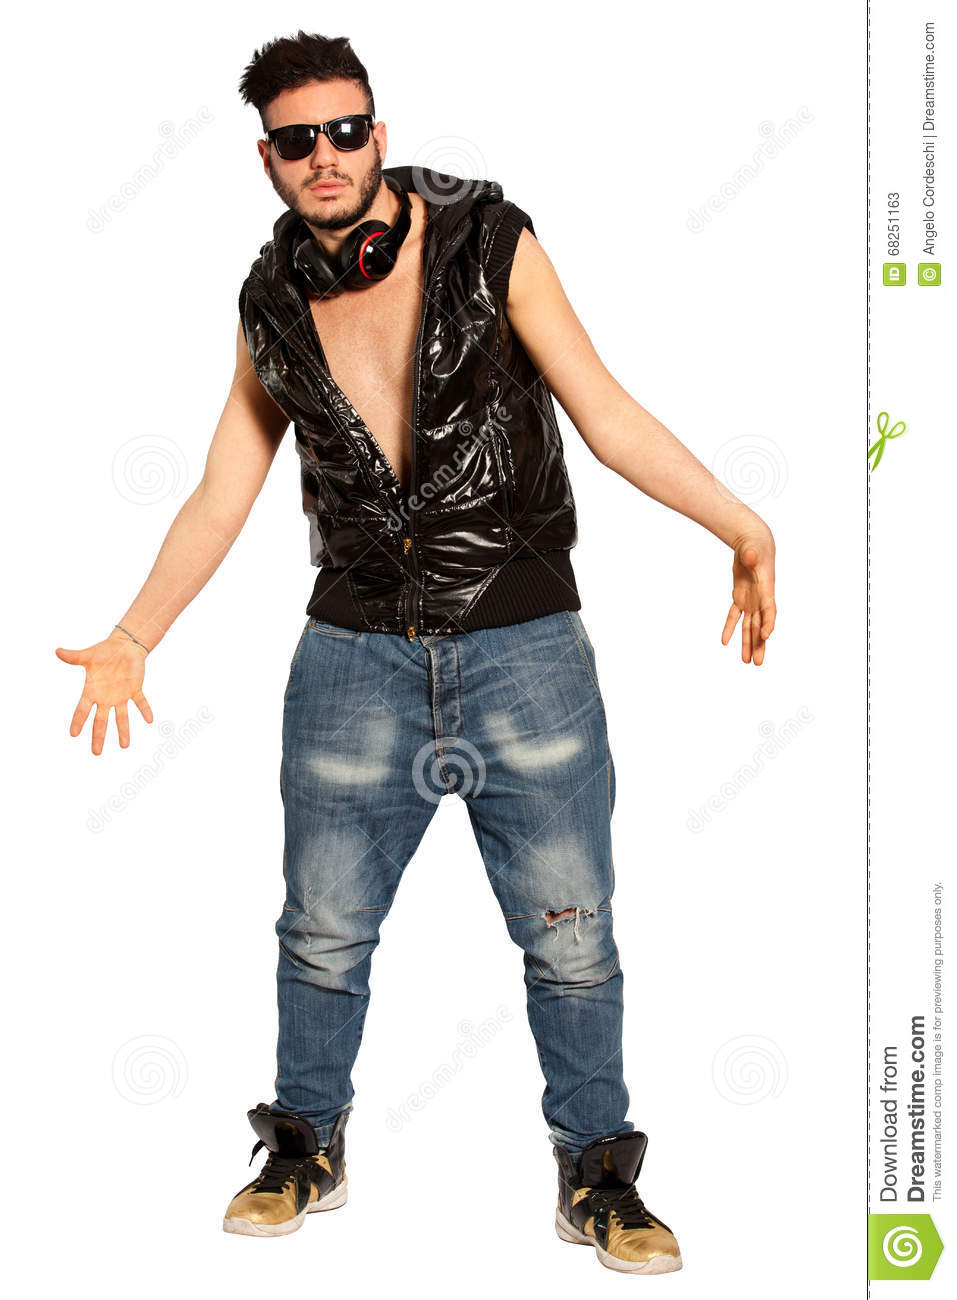 Fanatic Young Man Bully Boy Street Style On White Png